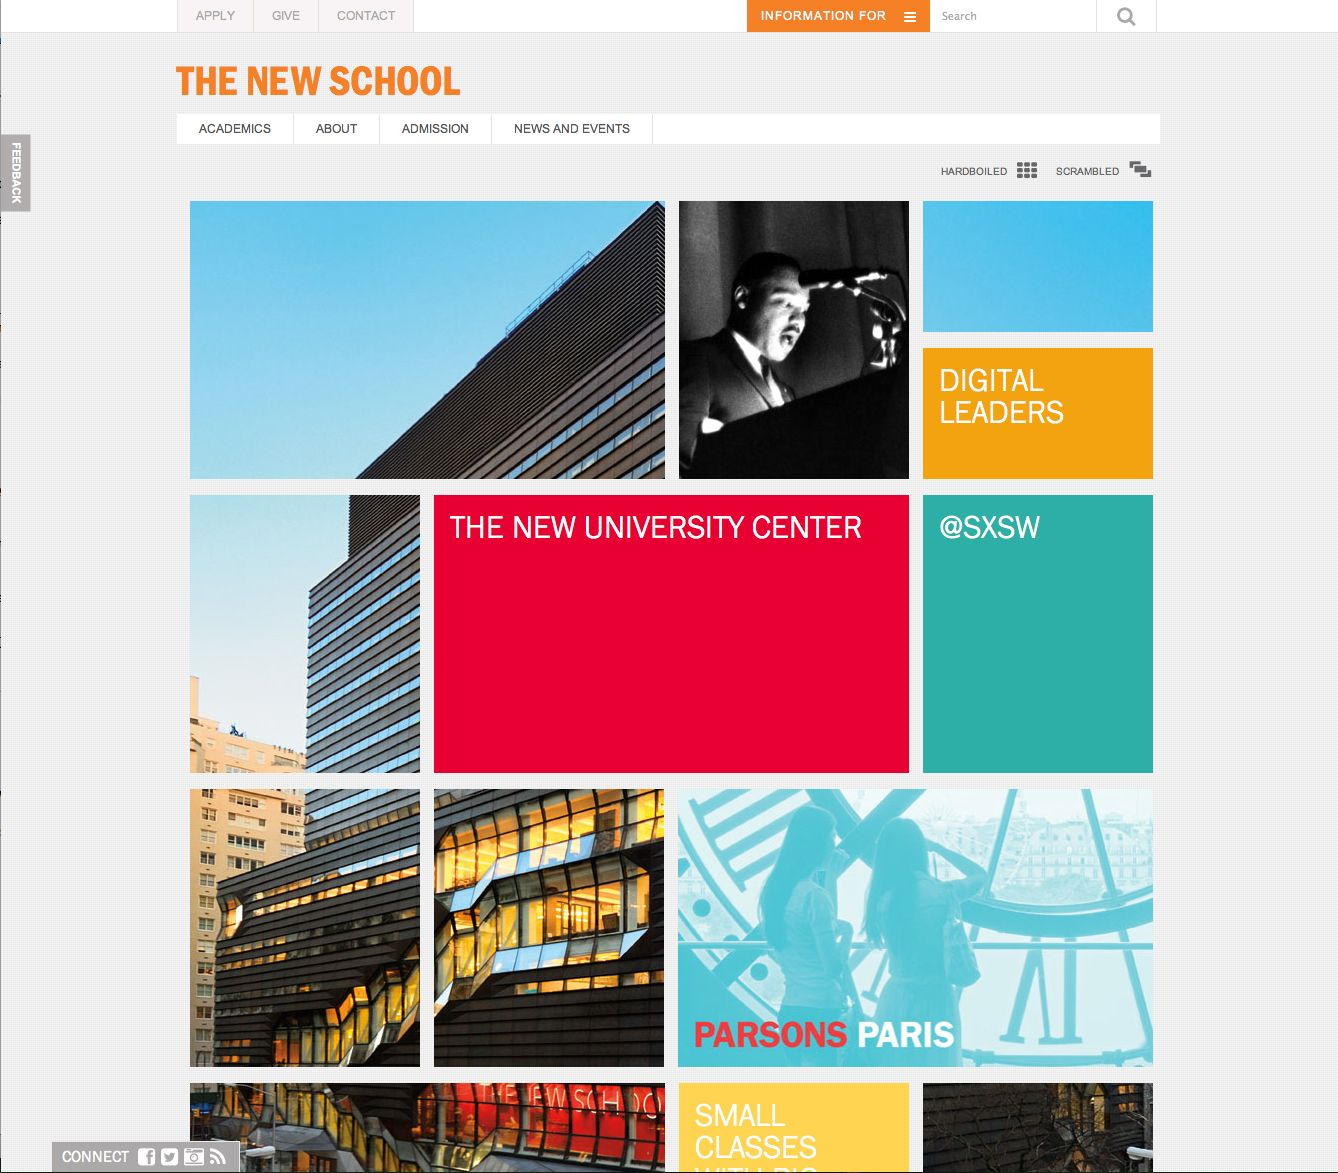 New School Main Page Liberal Arts College The New School University